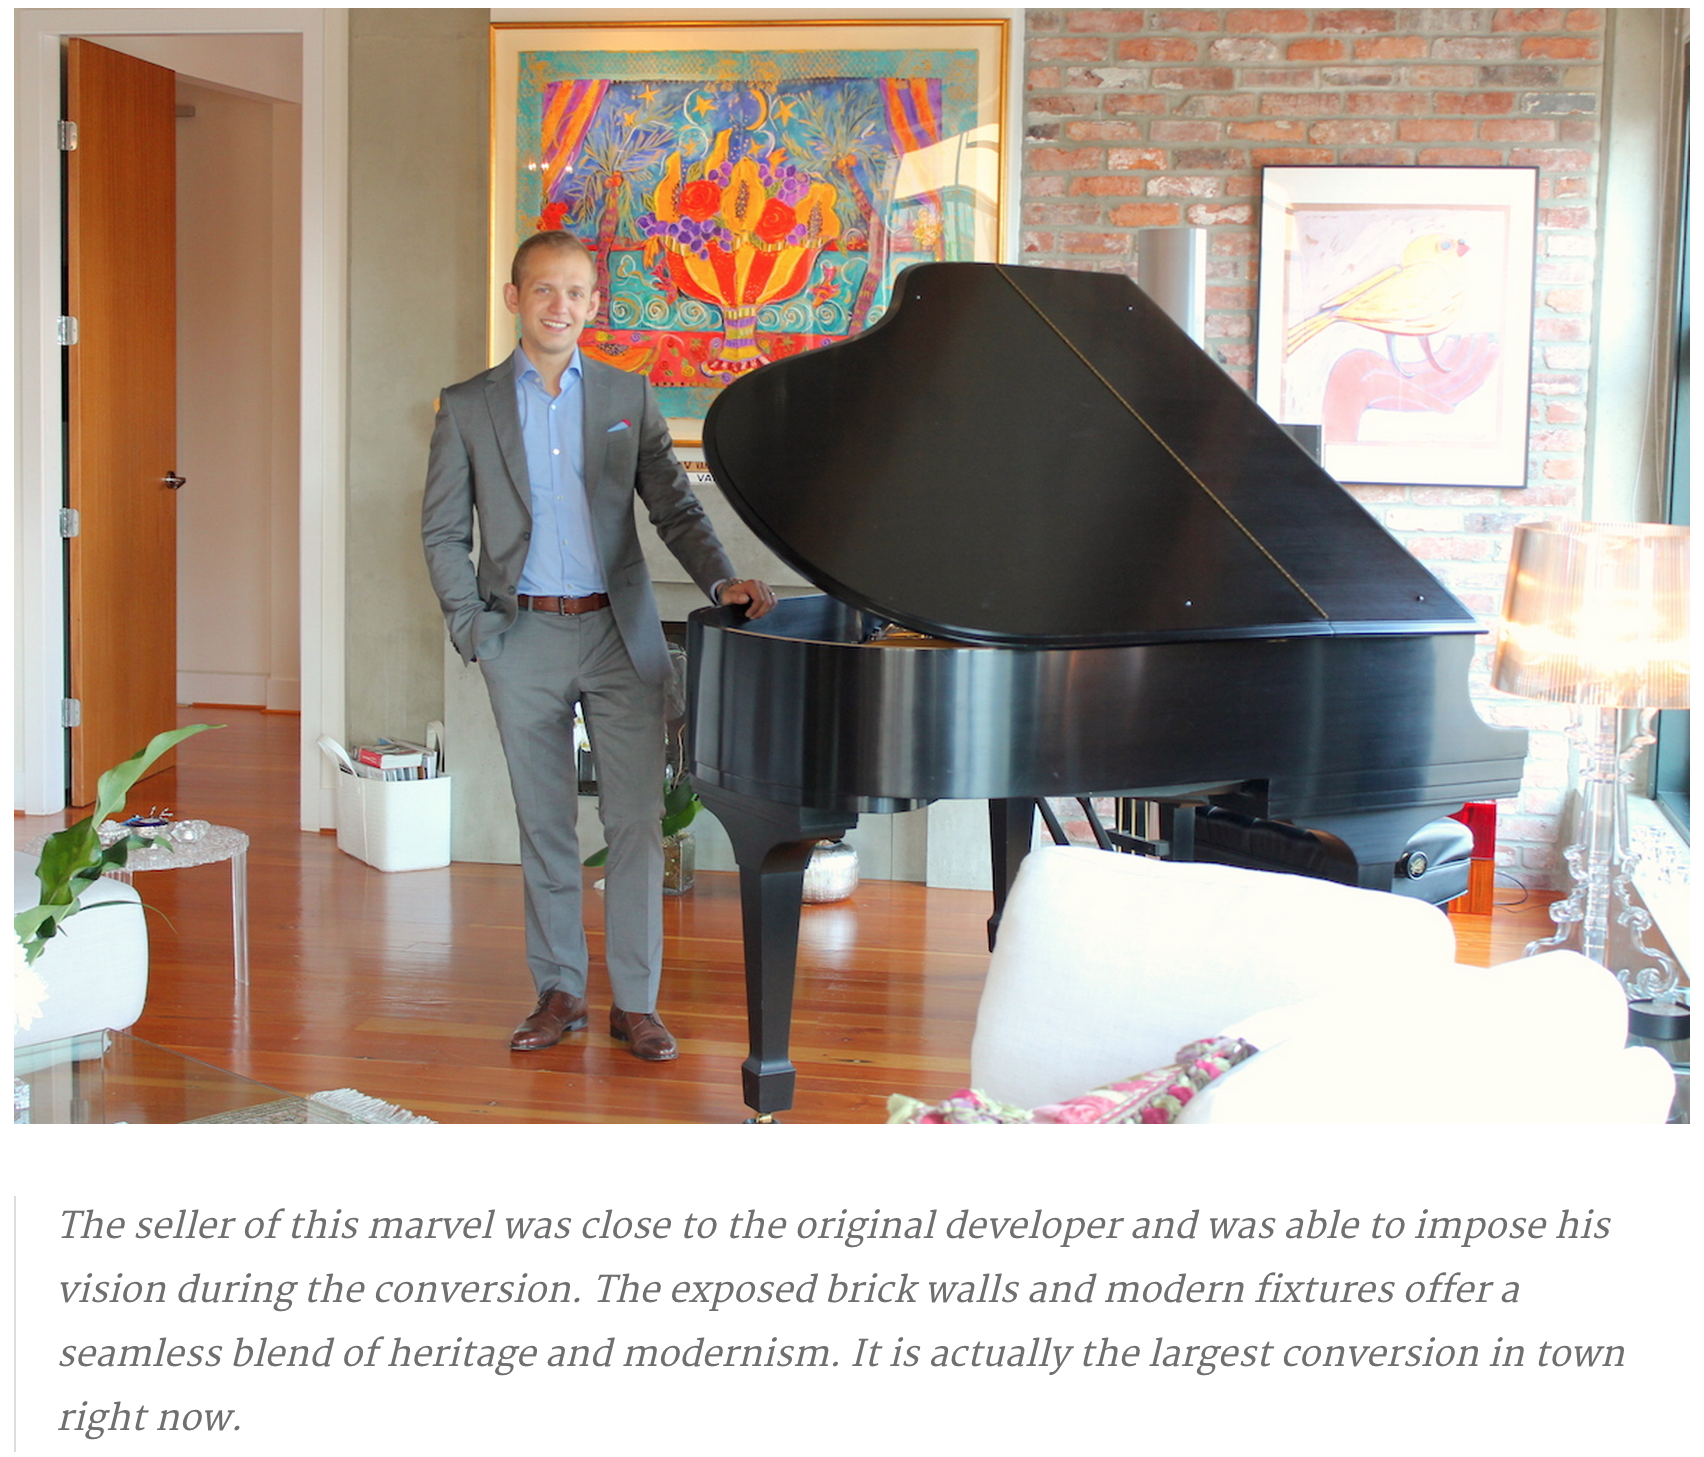 paul albrighton stands by the grand piano at 1180 homer street   vancouvers finest loft at 46m